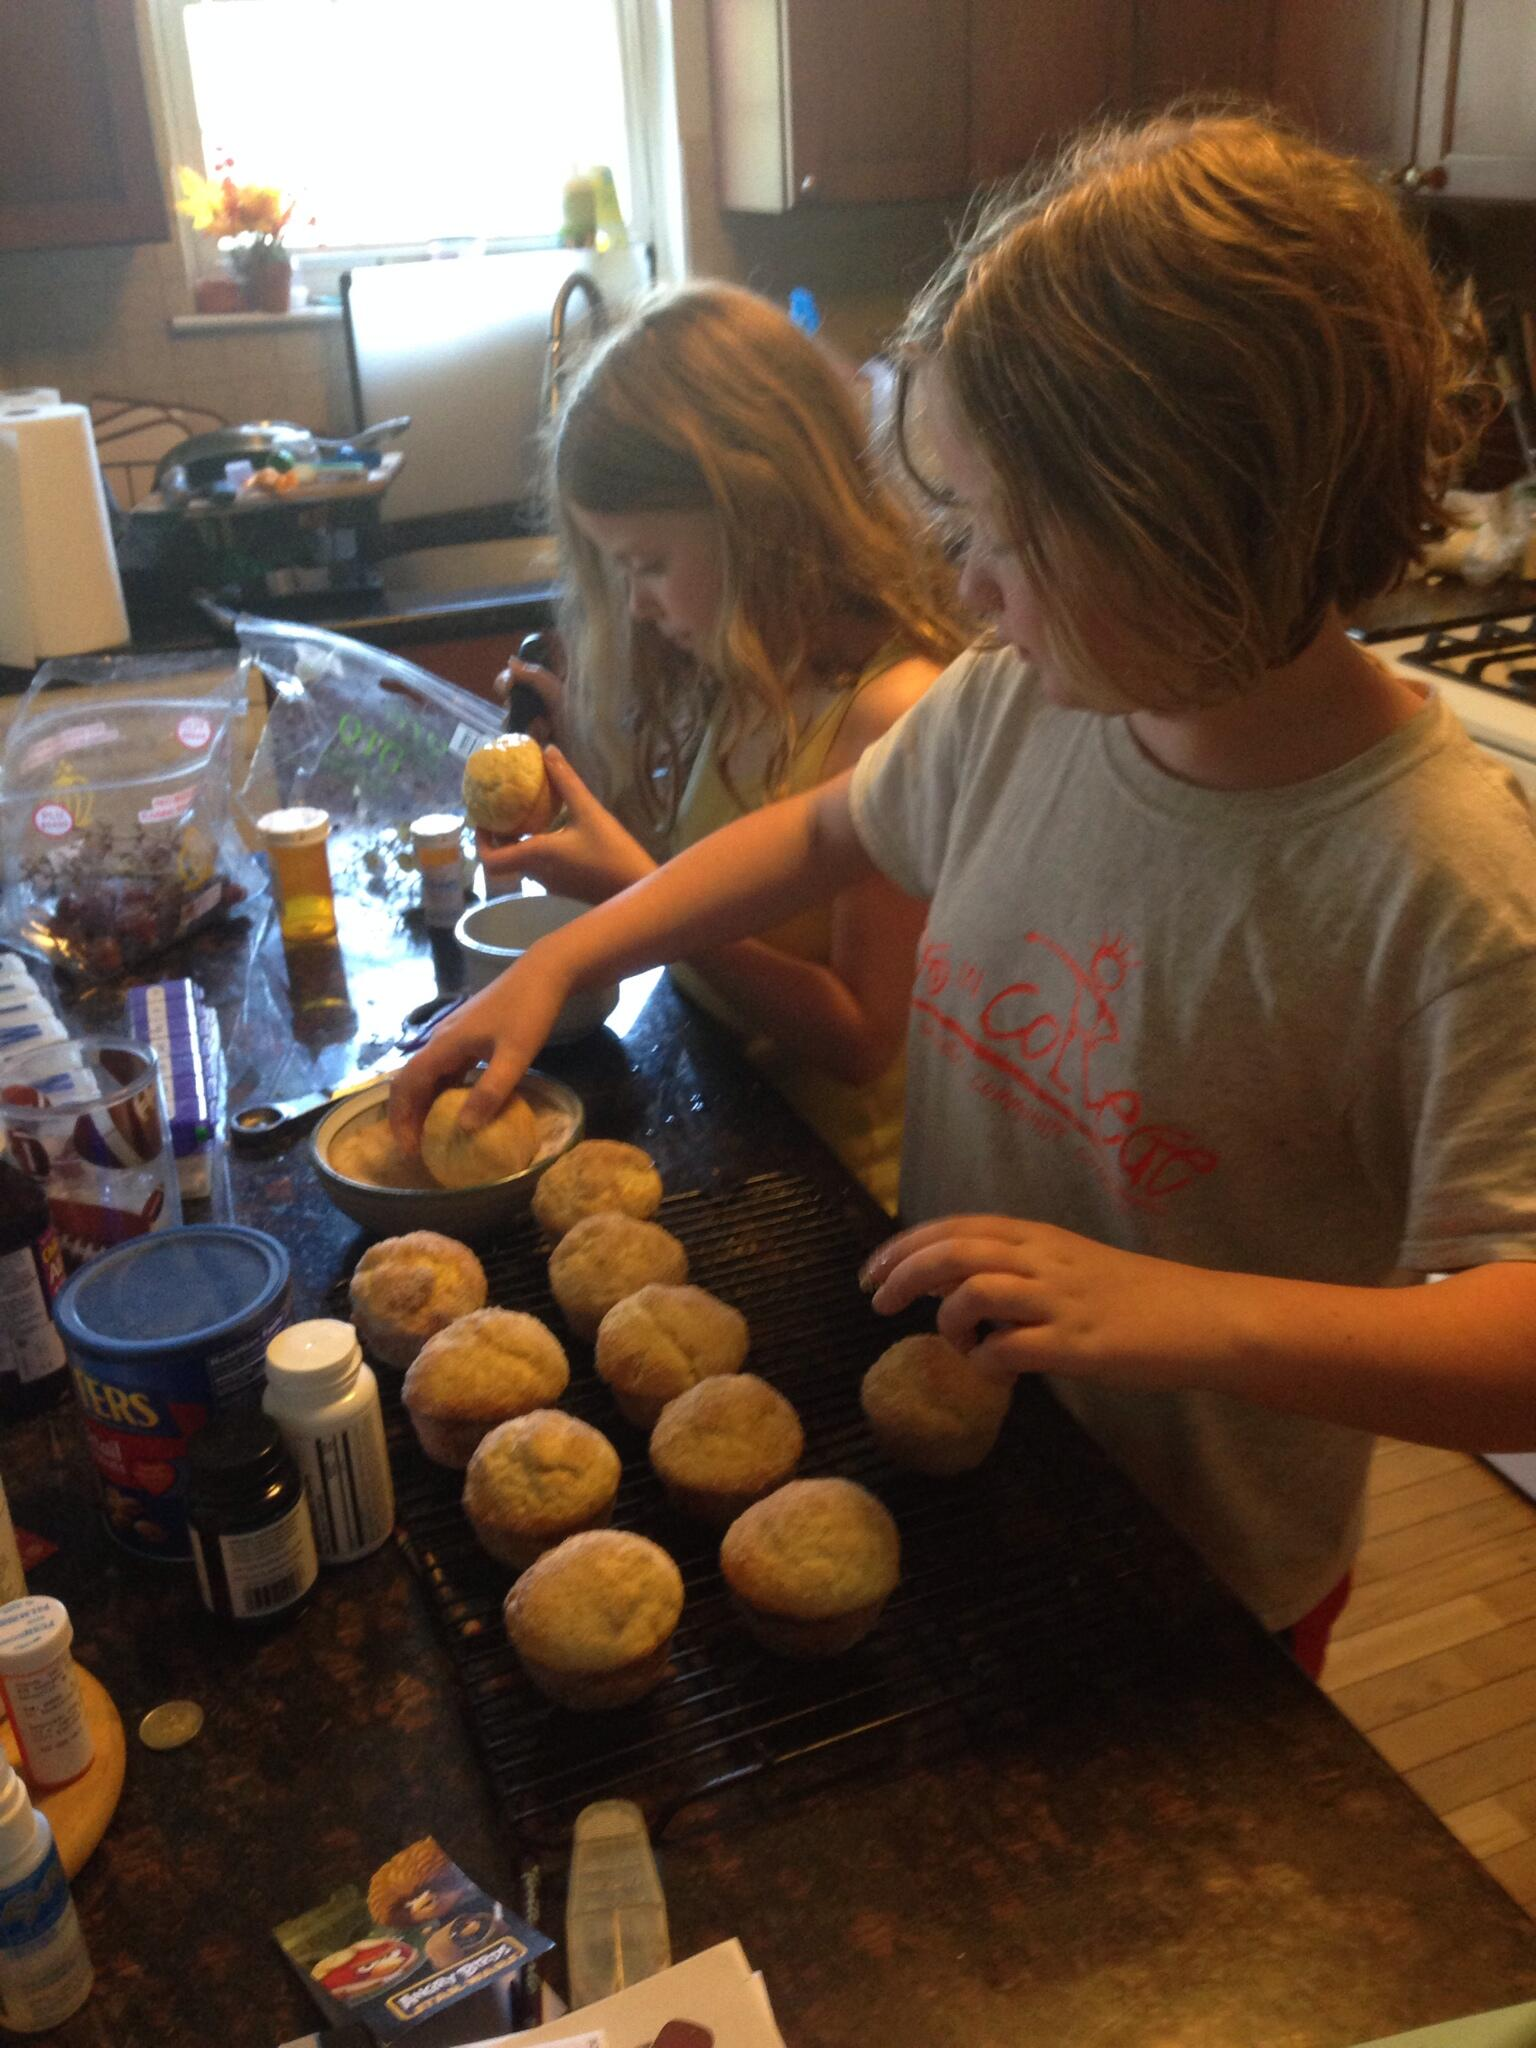 RT @mikehamiltonWP: @TestKitchen Muffin-tin doughnut assembly line for Mothers Day. http://t.co/o54UeHRU8P